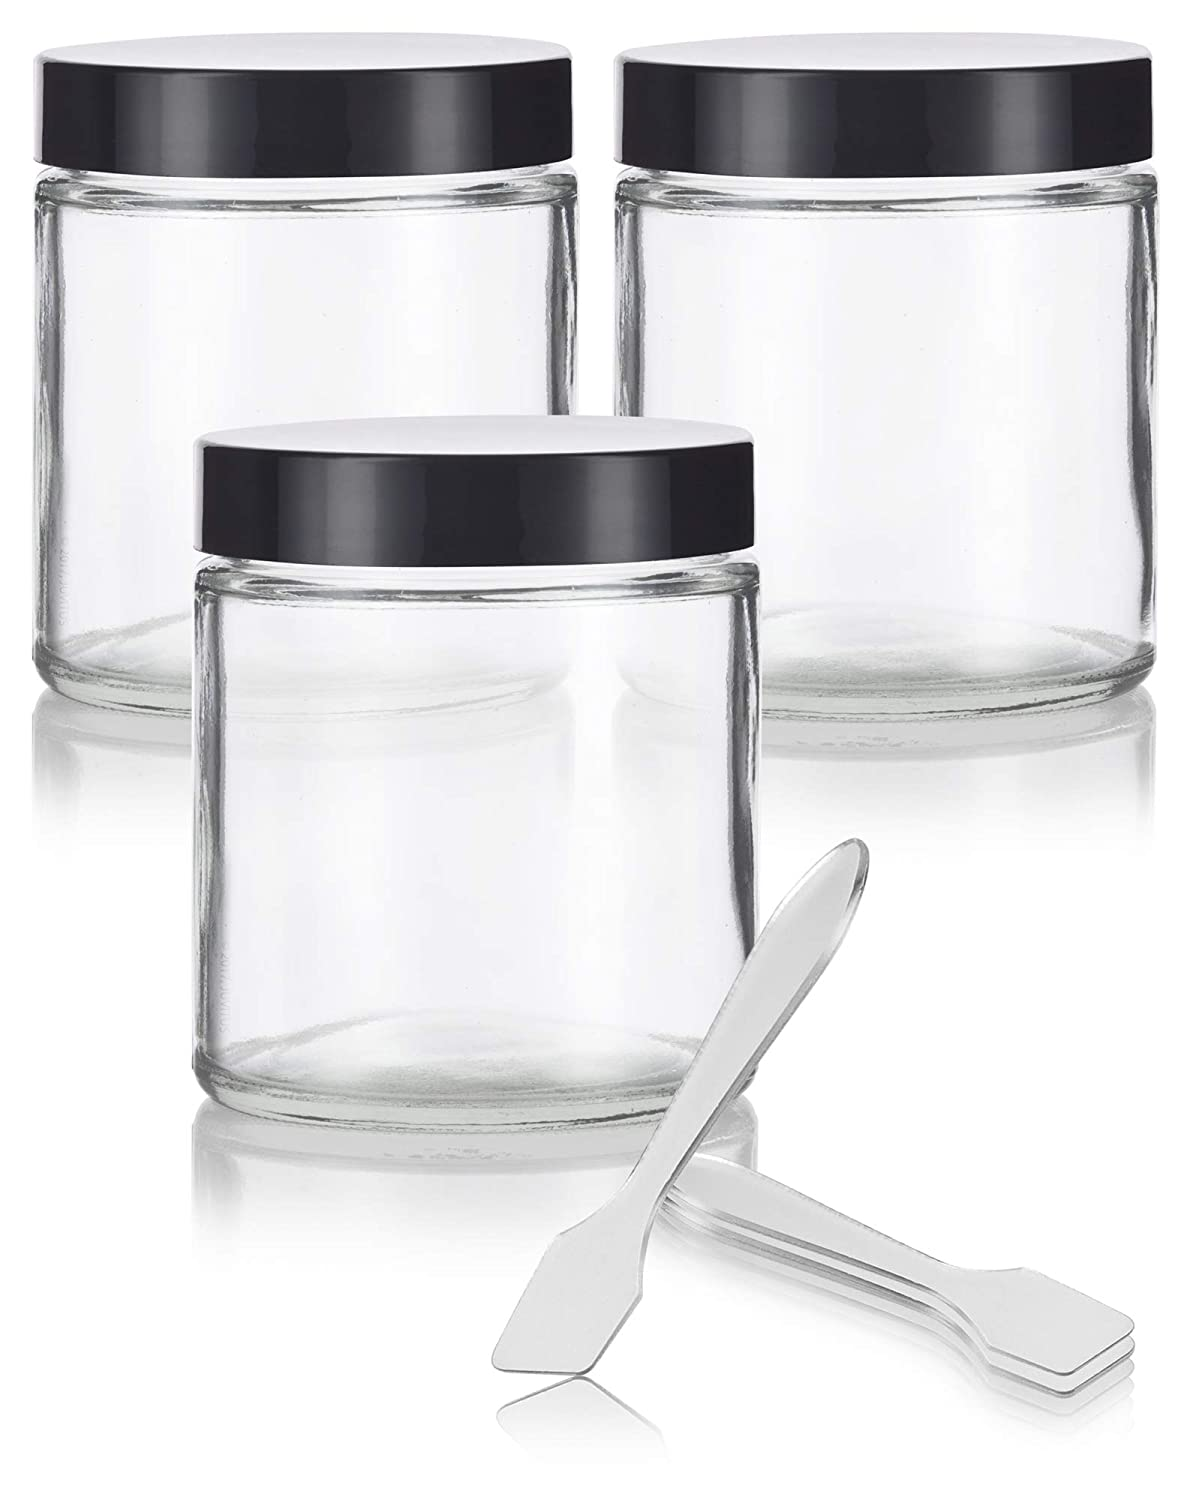 Clear Thick Glass Straight Sided Jar – 4 oz 120 ml 3 Pack Spatulas